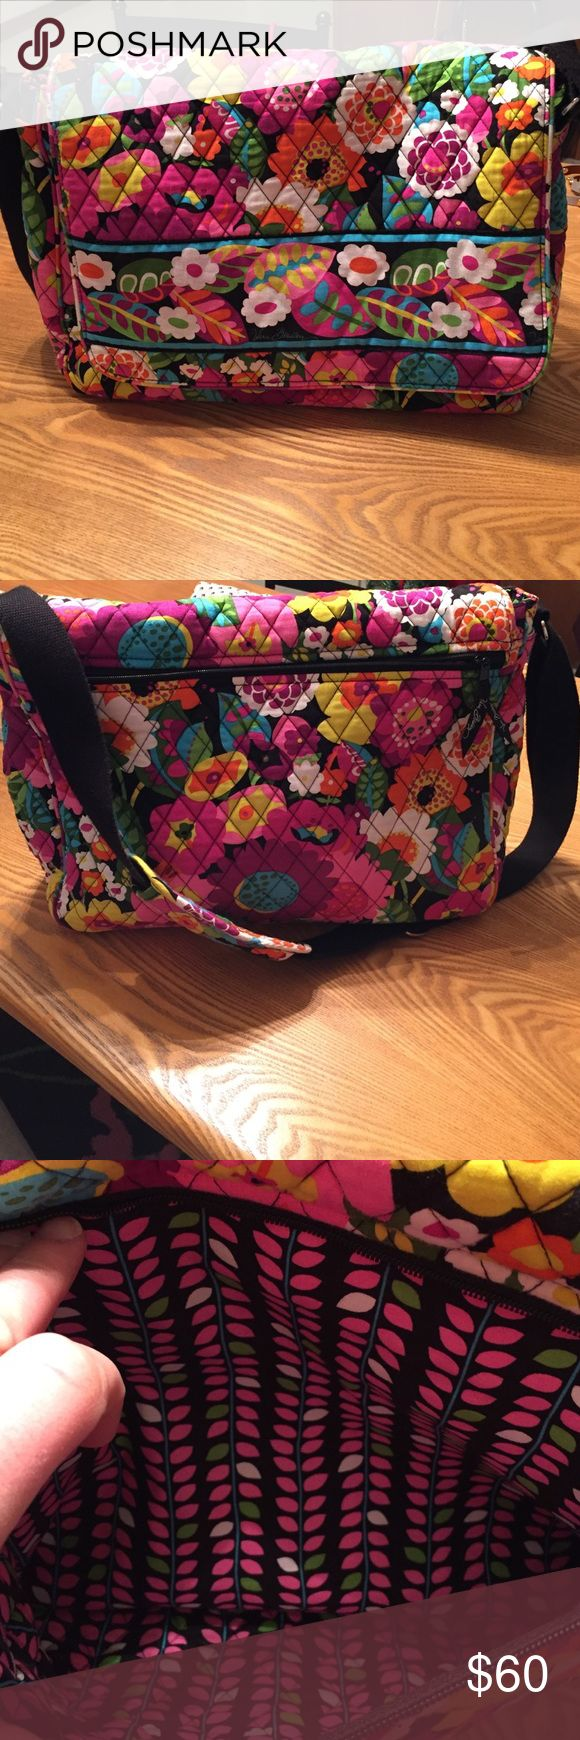 Vera Bradley laptop bag 💕❤💜❤💕 Adorable bag! In excellent condition!! Used just a few times! Great for traveling - has several pockets 💕 Vera Bradley Bags Laptop Bags